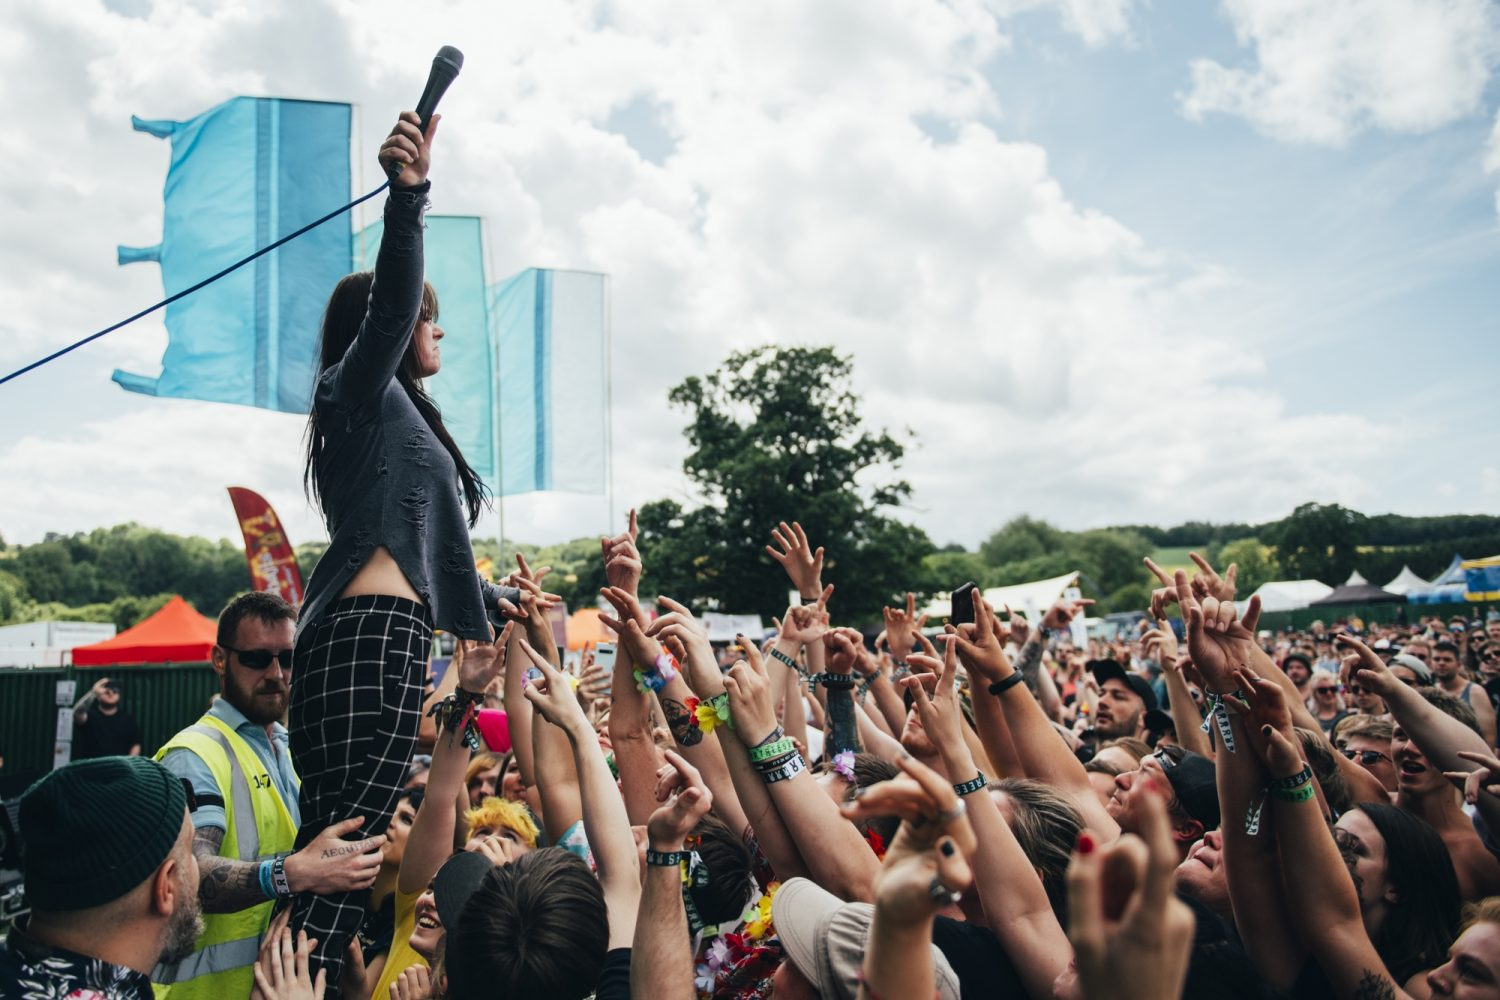 Dream State show what they're made of at 2000trees 2019